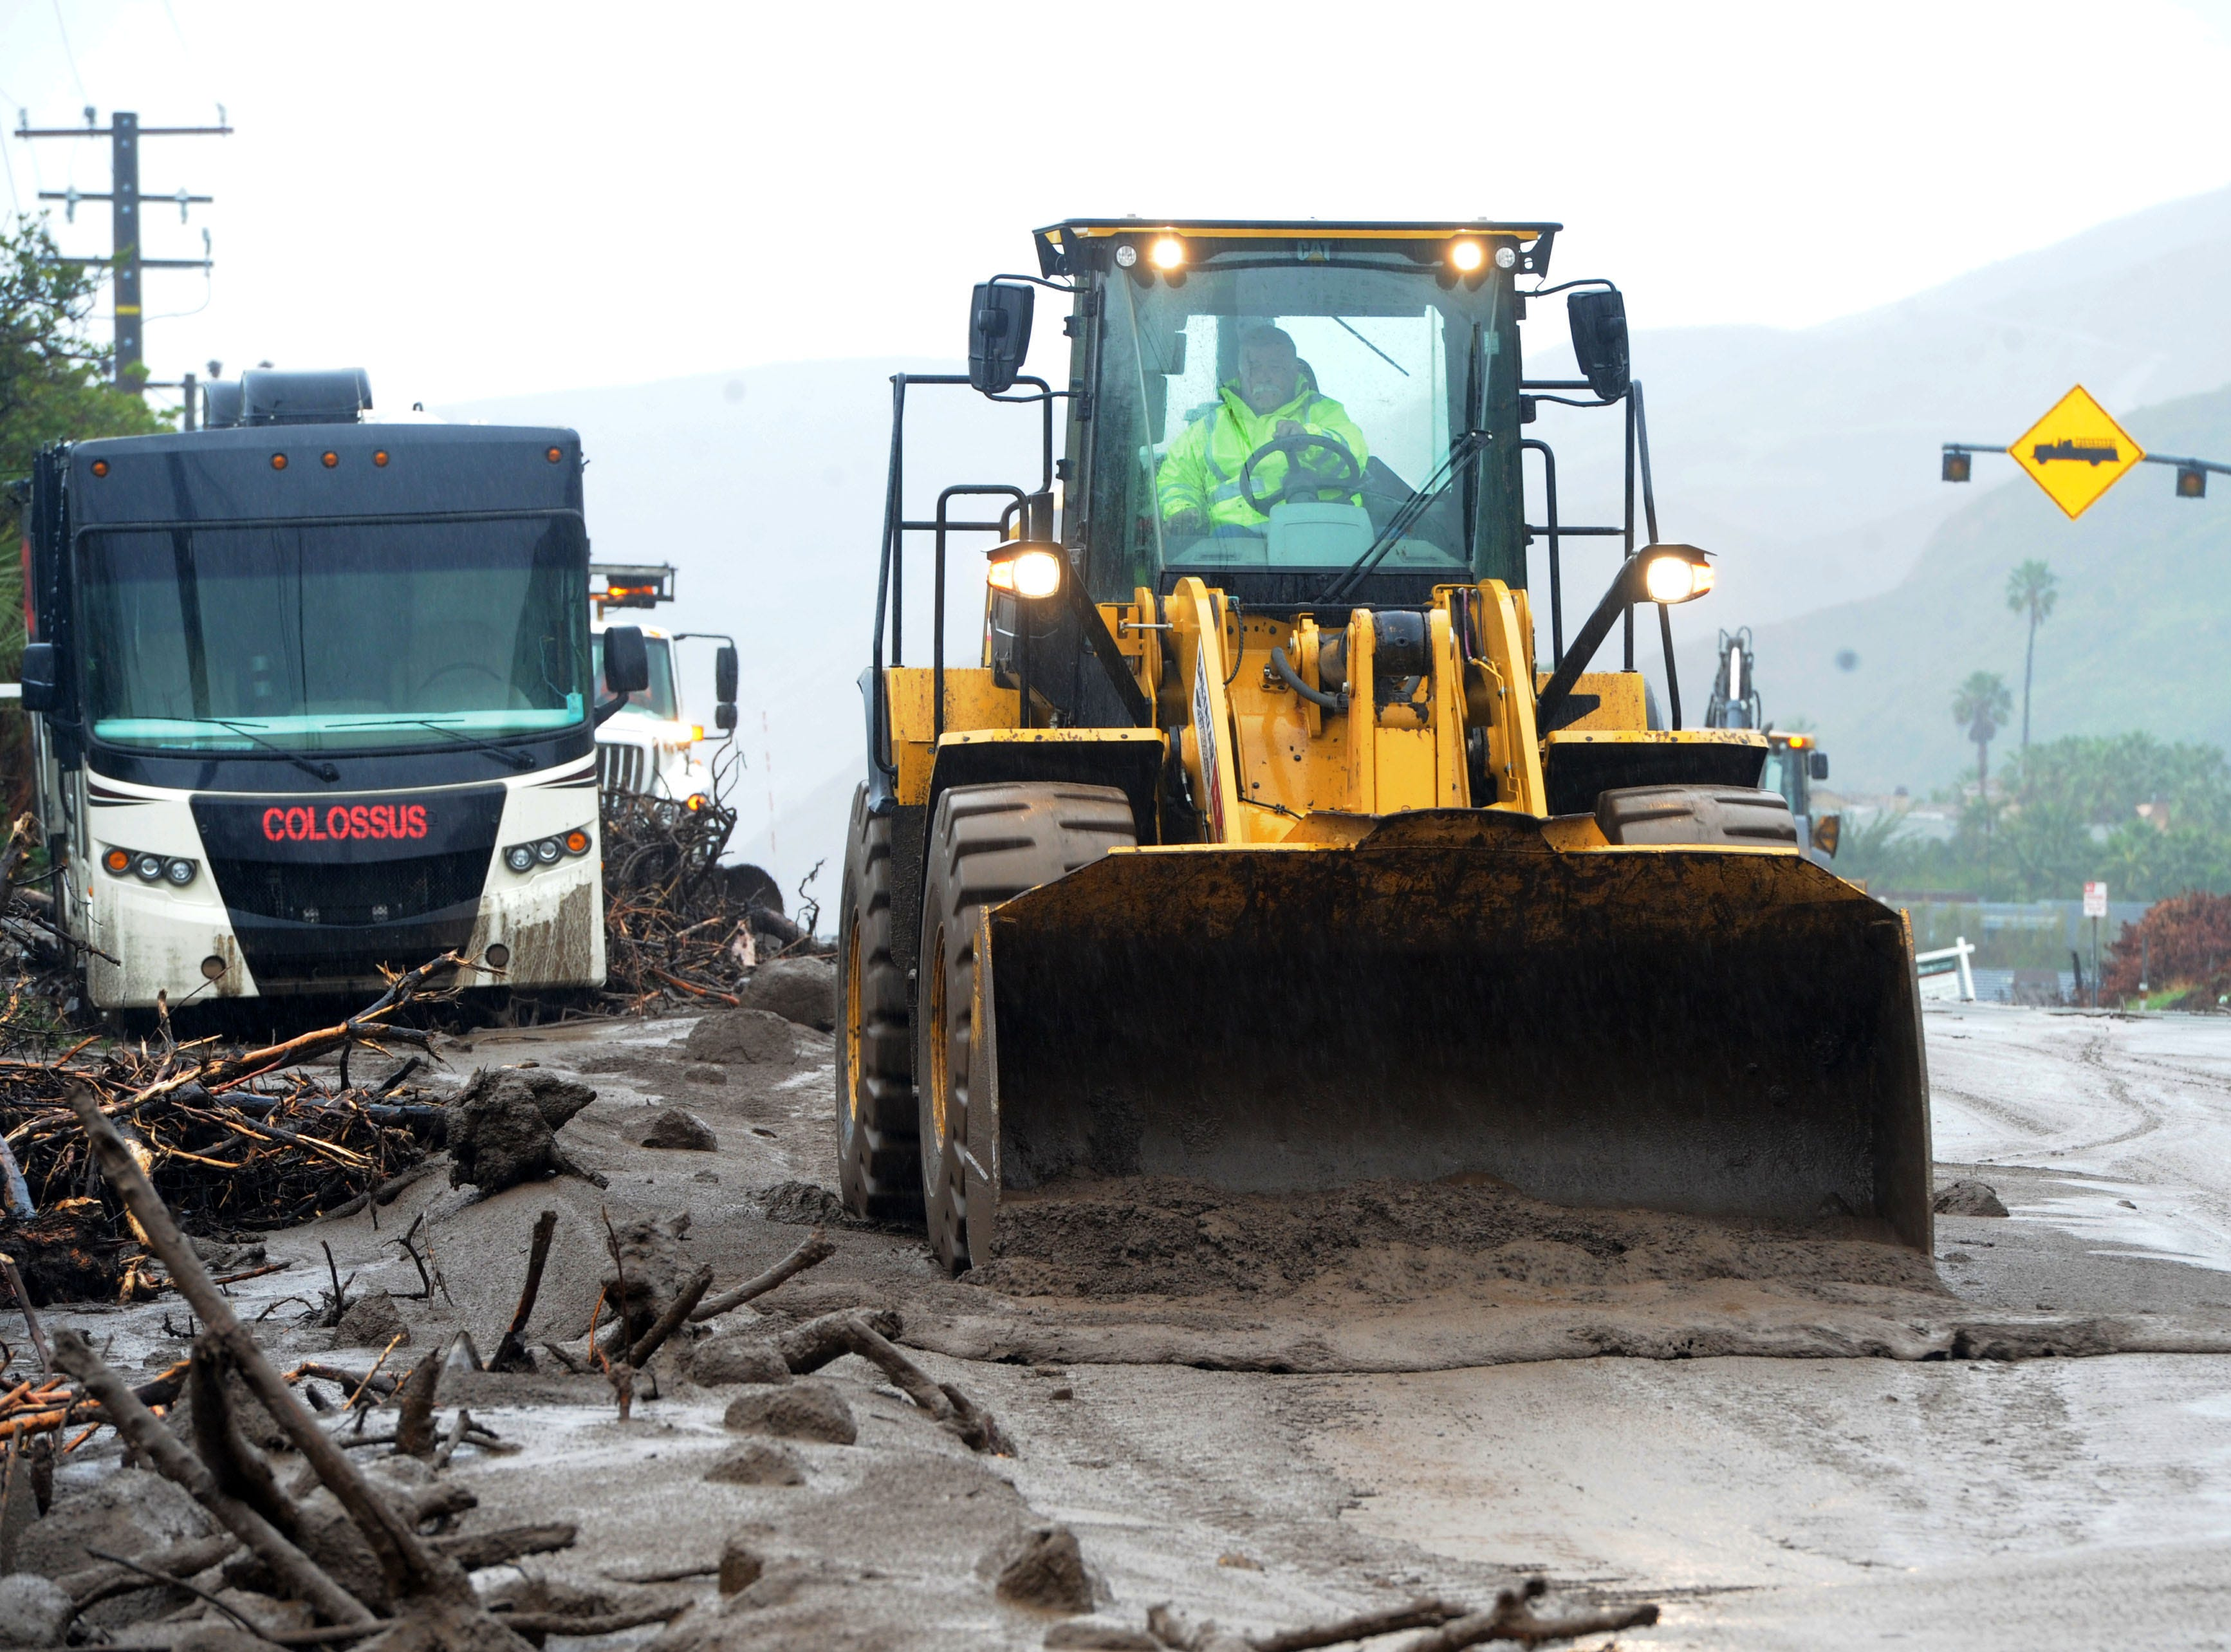 Crews work to remove dirt and rocks from Pacific Coast Highway between Point Mugu and Malibu on Saturday after a storm moved through. The debris led to the highway's closure.